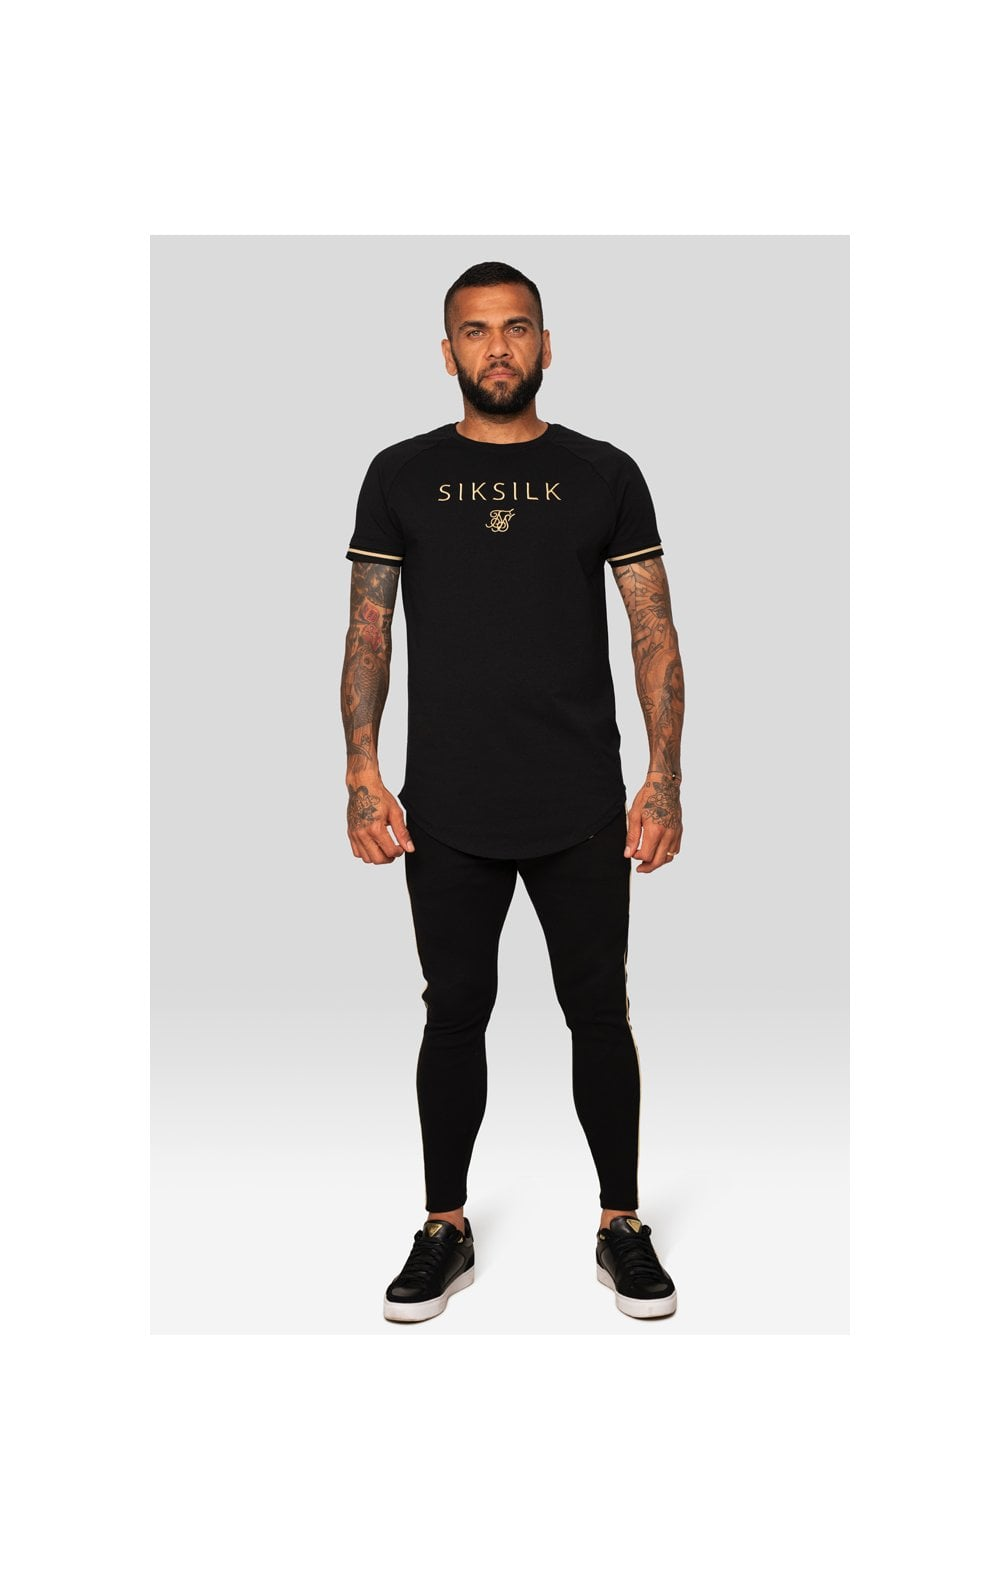 SikSilk X Dani Alves S/S Inset Tech Tee – Black (2)